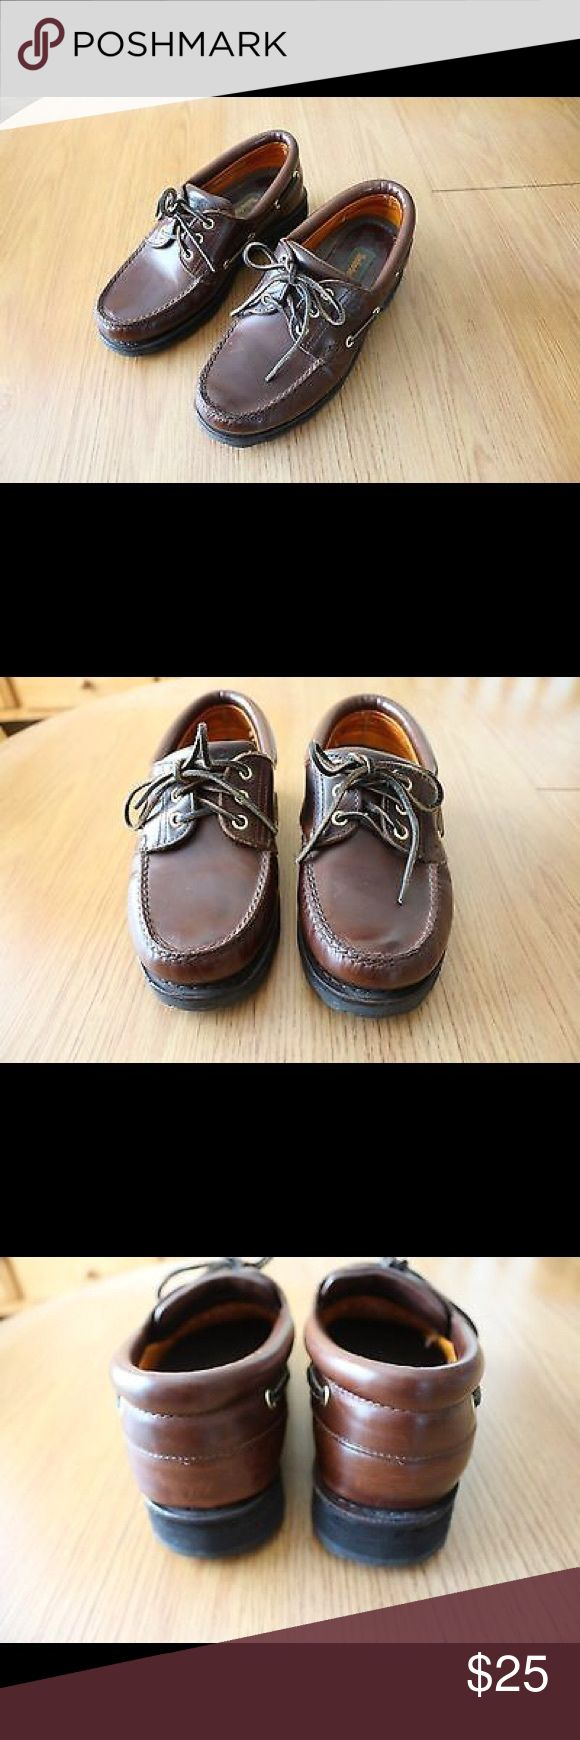 TIMBERLAND Boat Deck shoes size 8M Pre-Owned Timberland Brown Leather Casual Comfort Boat Deck Shoes Nautical Footwear Size 8 M, Style # 836026. Shoes are in great condition, see photos. Timberland Shoes Boat Shoes